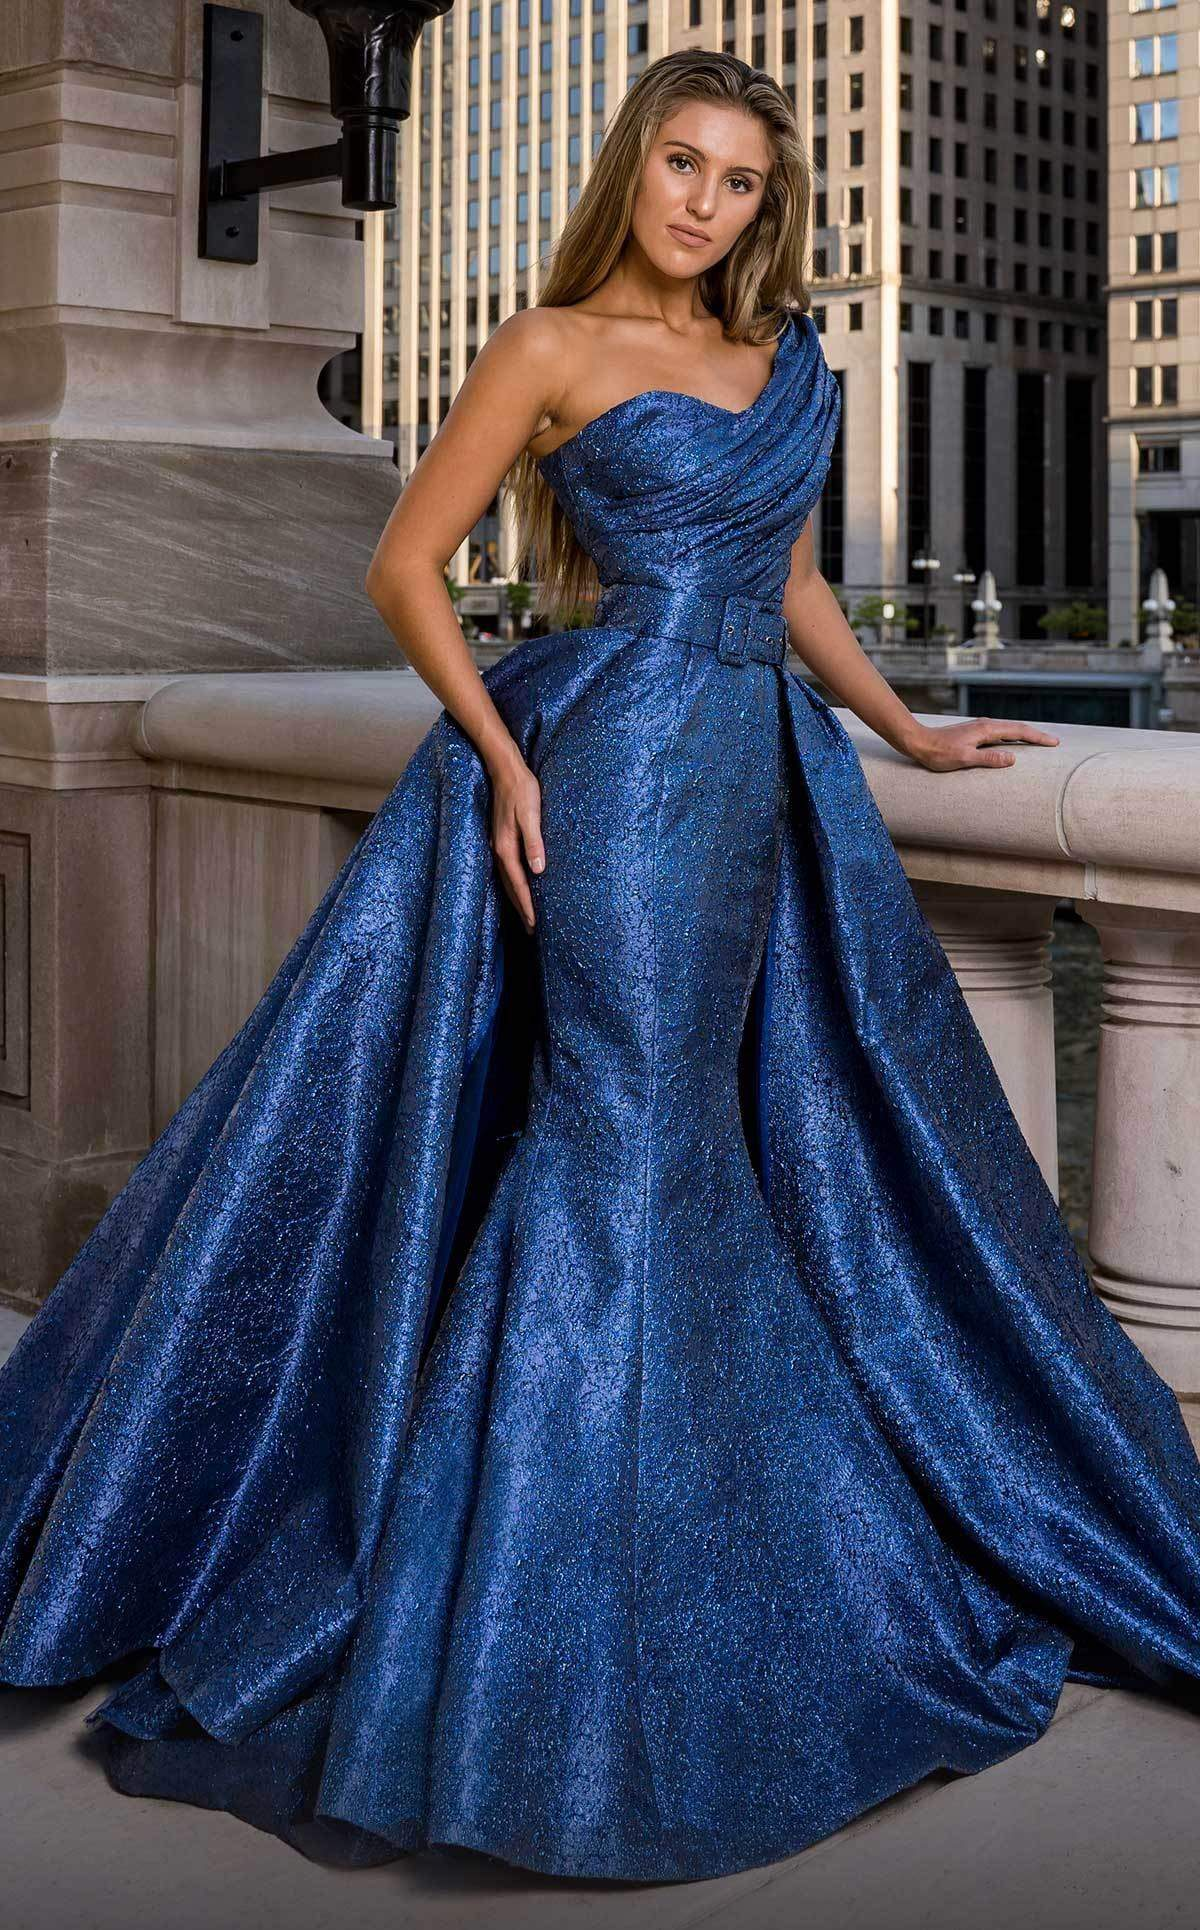 MNM COUTURE - F00613 One Shoulder Ruched Mermaid Dress With Overskirt In Blue